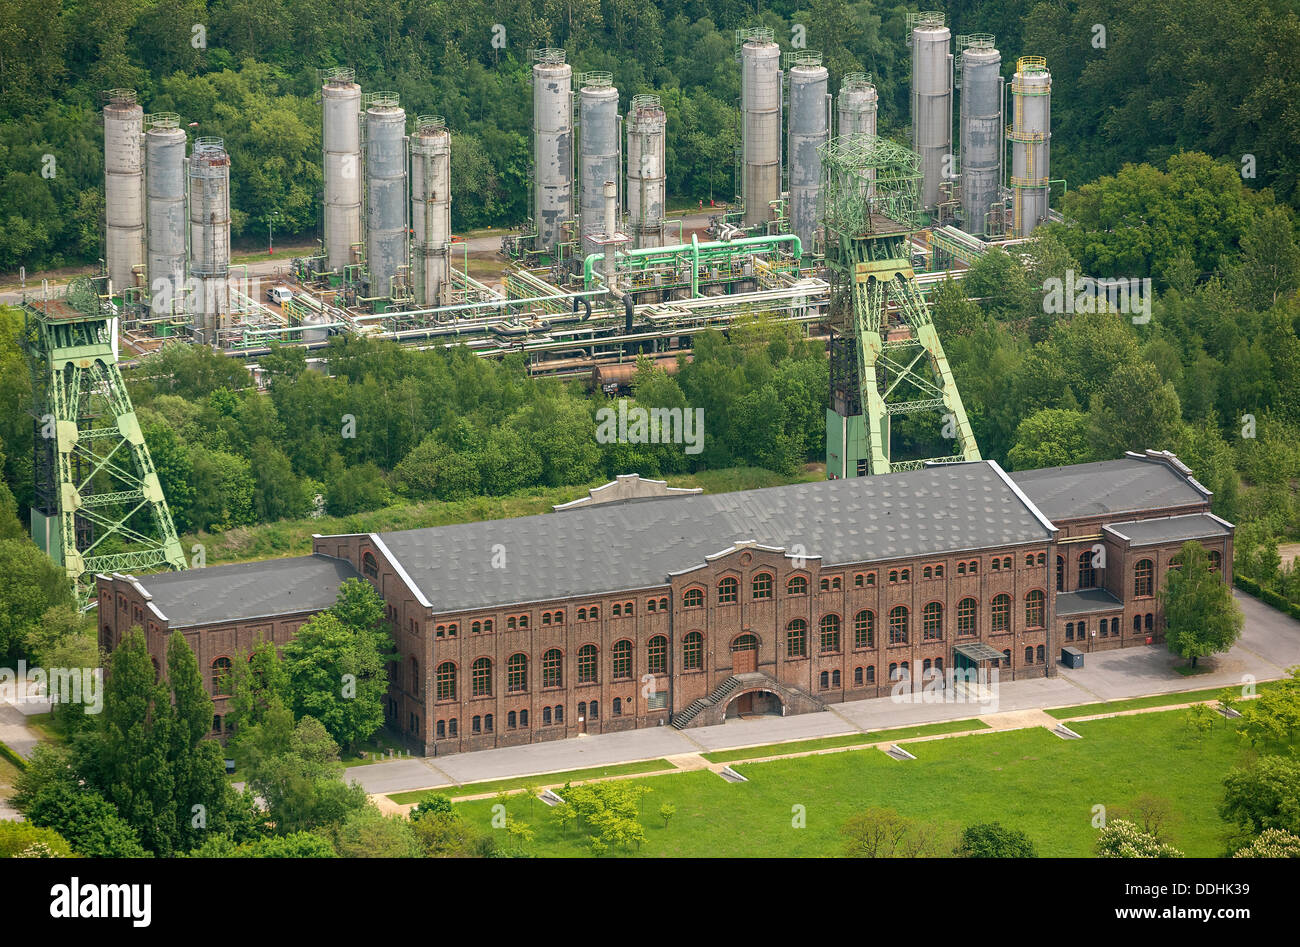 Aerial view, Zweckel machine hall, headframes of the former Zweckel colliery, Pit 2 - Stock Image